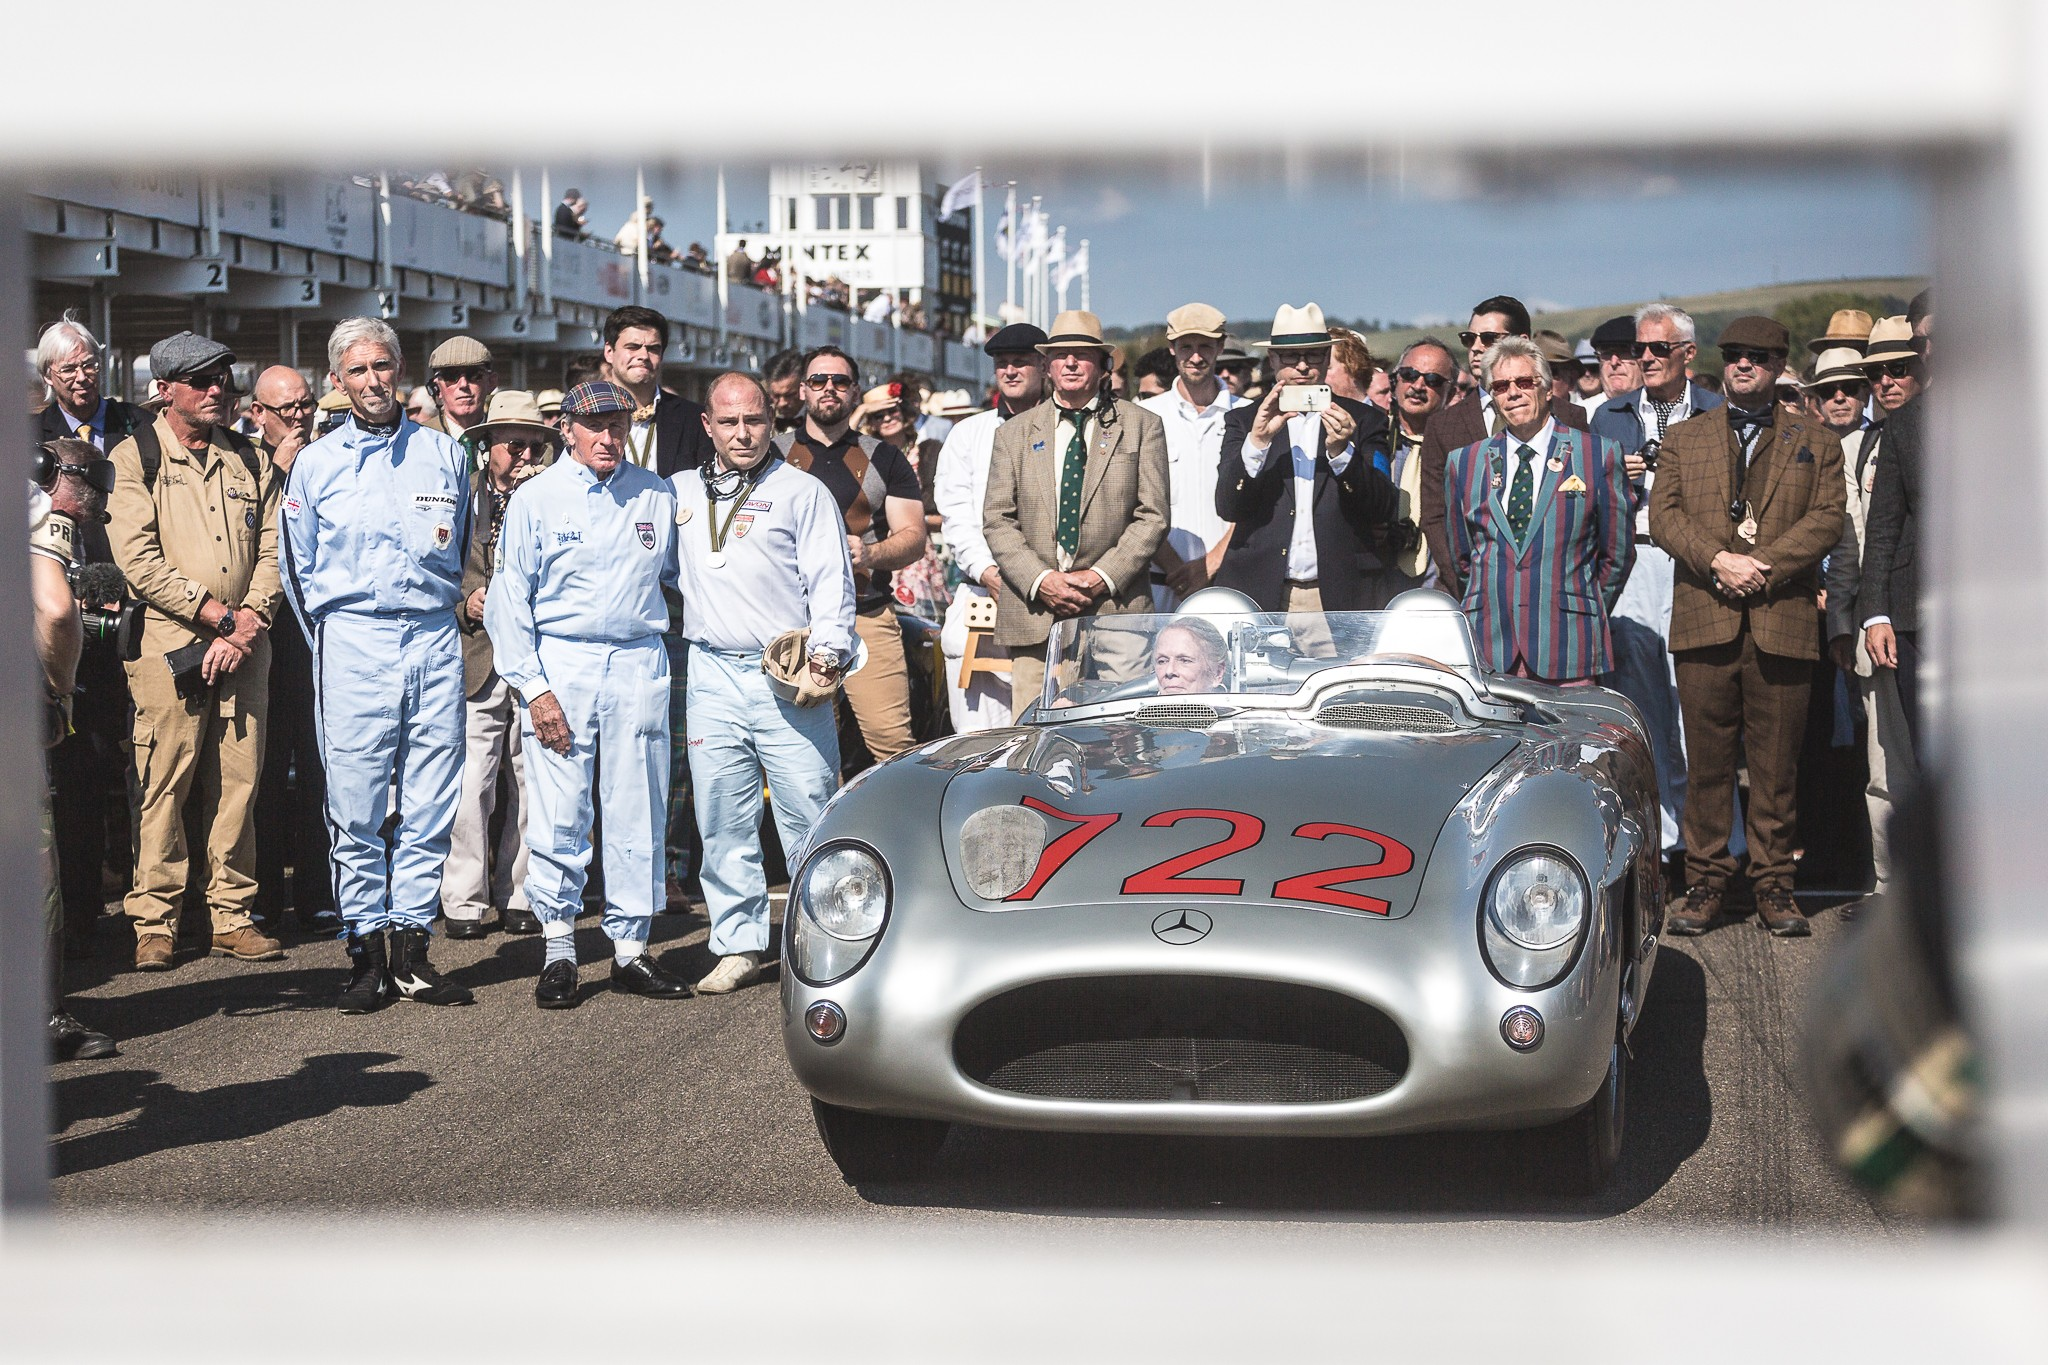 Sir Stirling Moss and his 300SLR